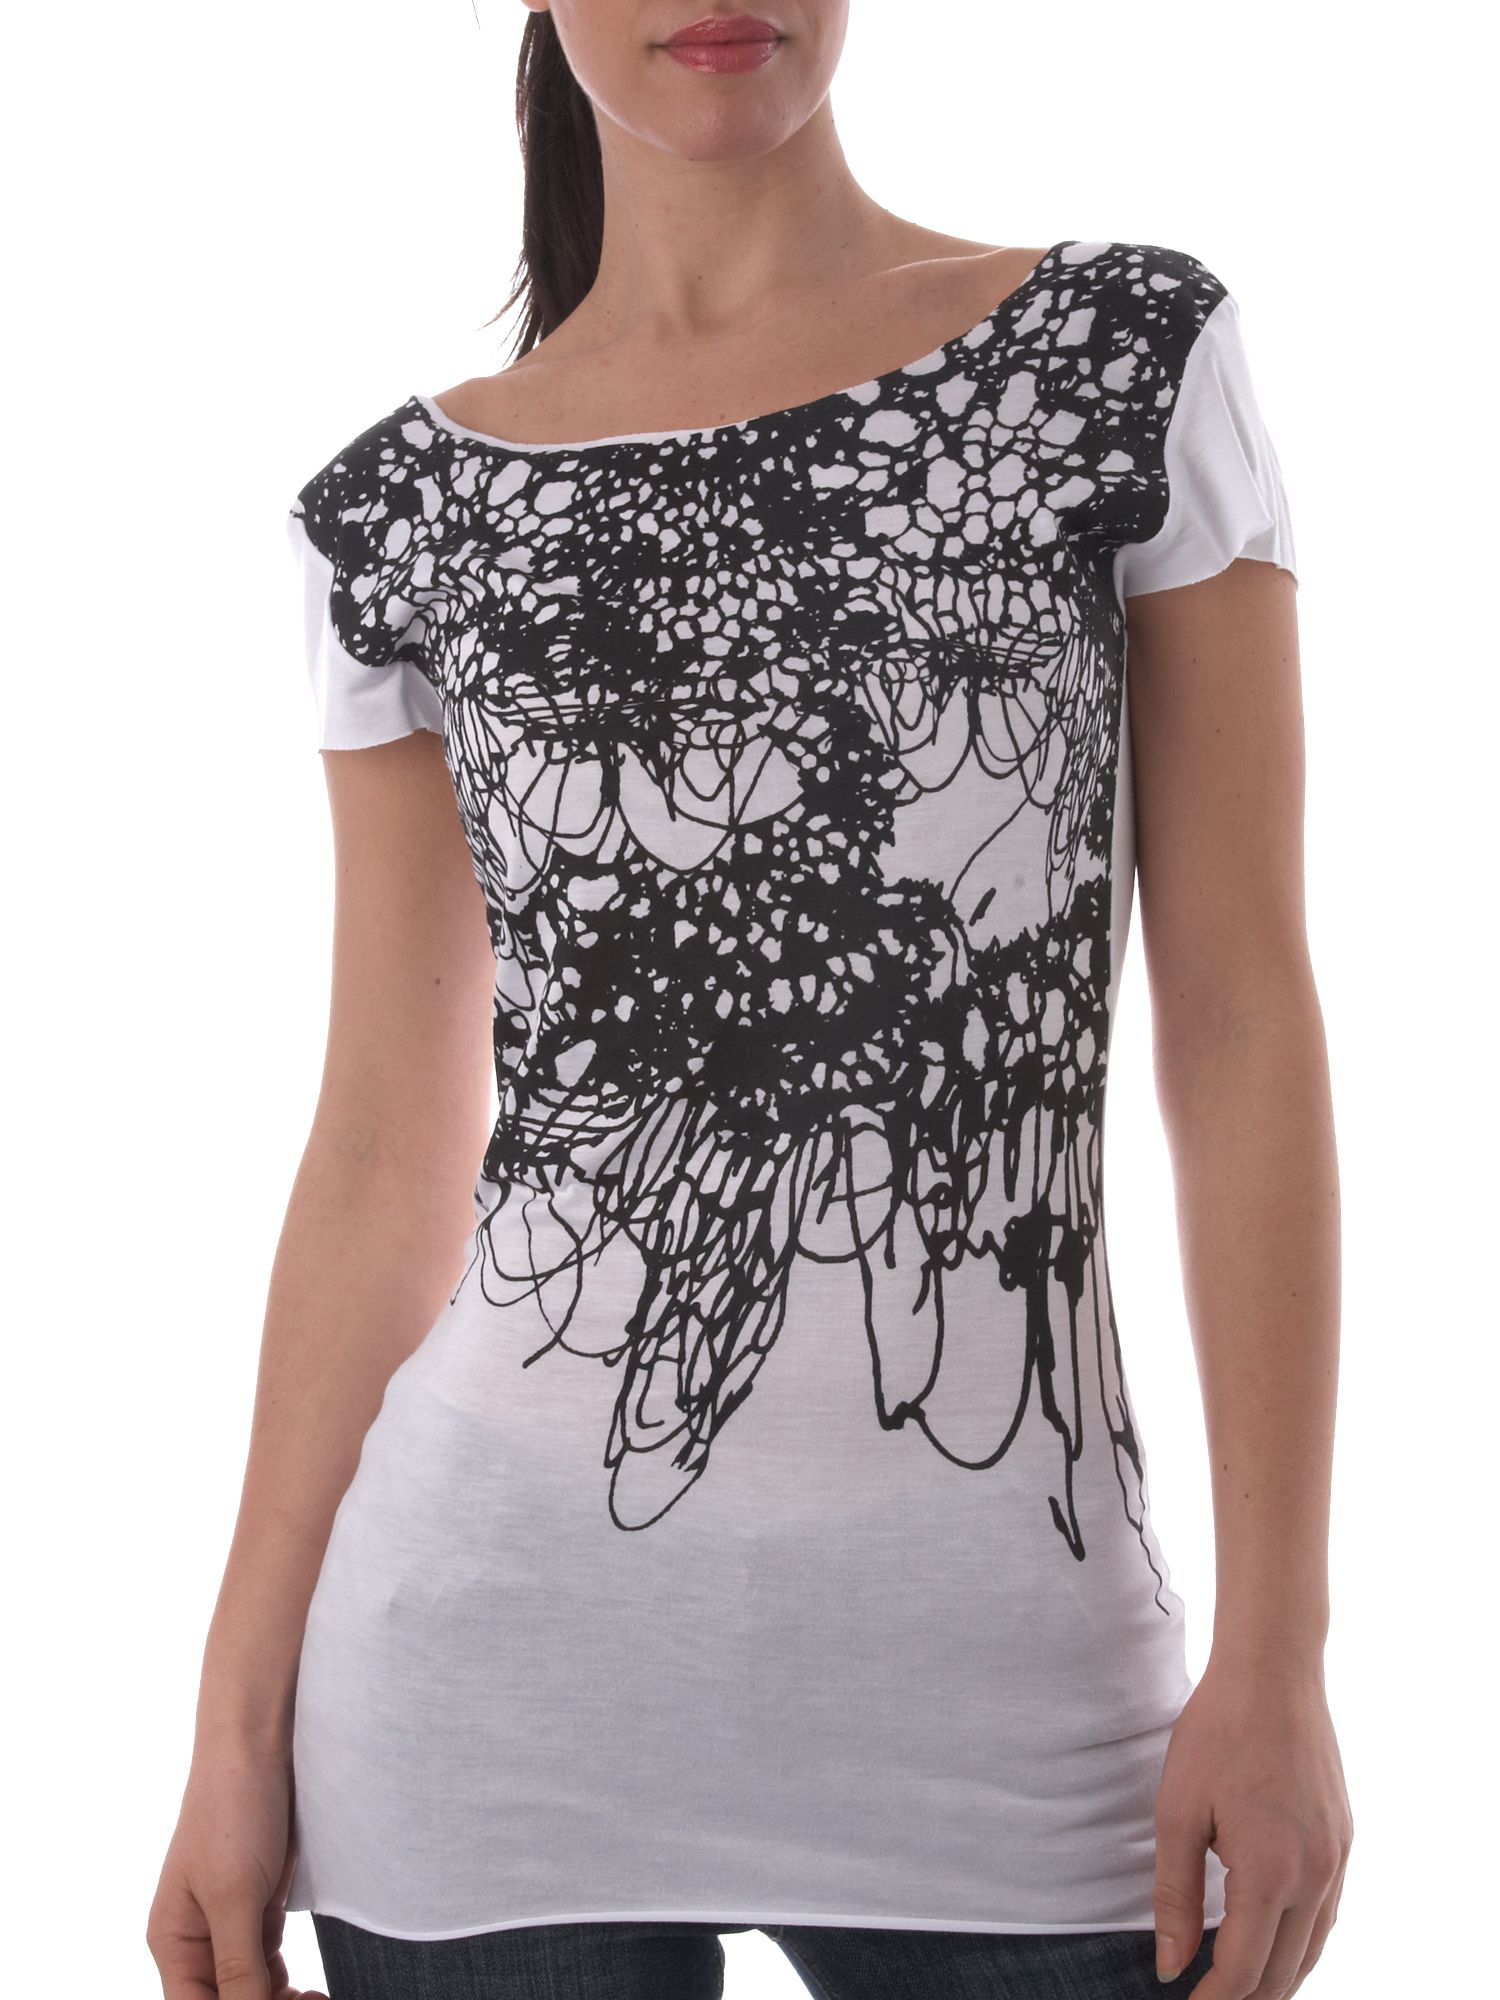 Therapy Mohair placement t-shirt product image